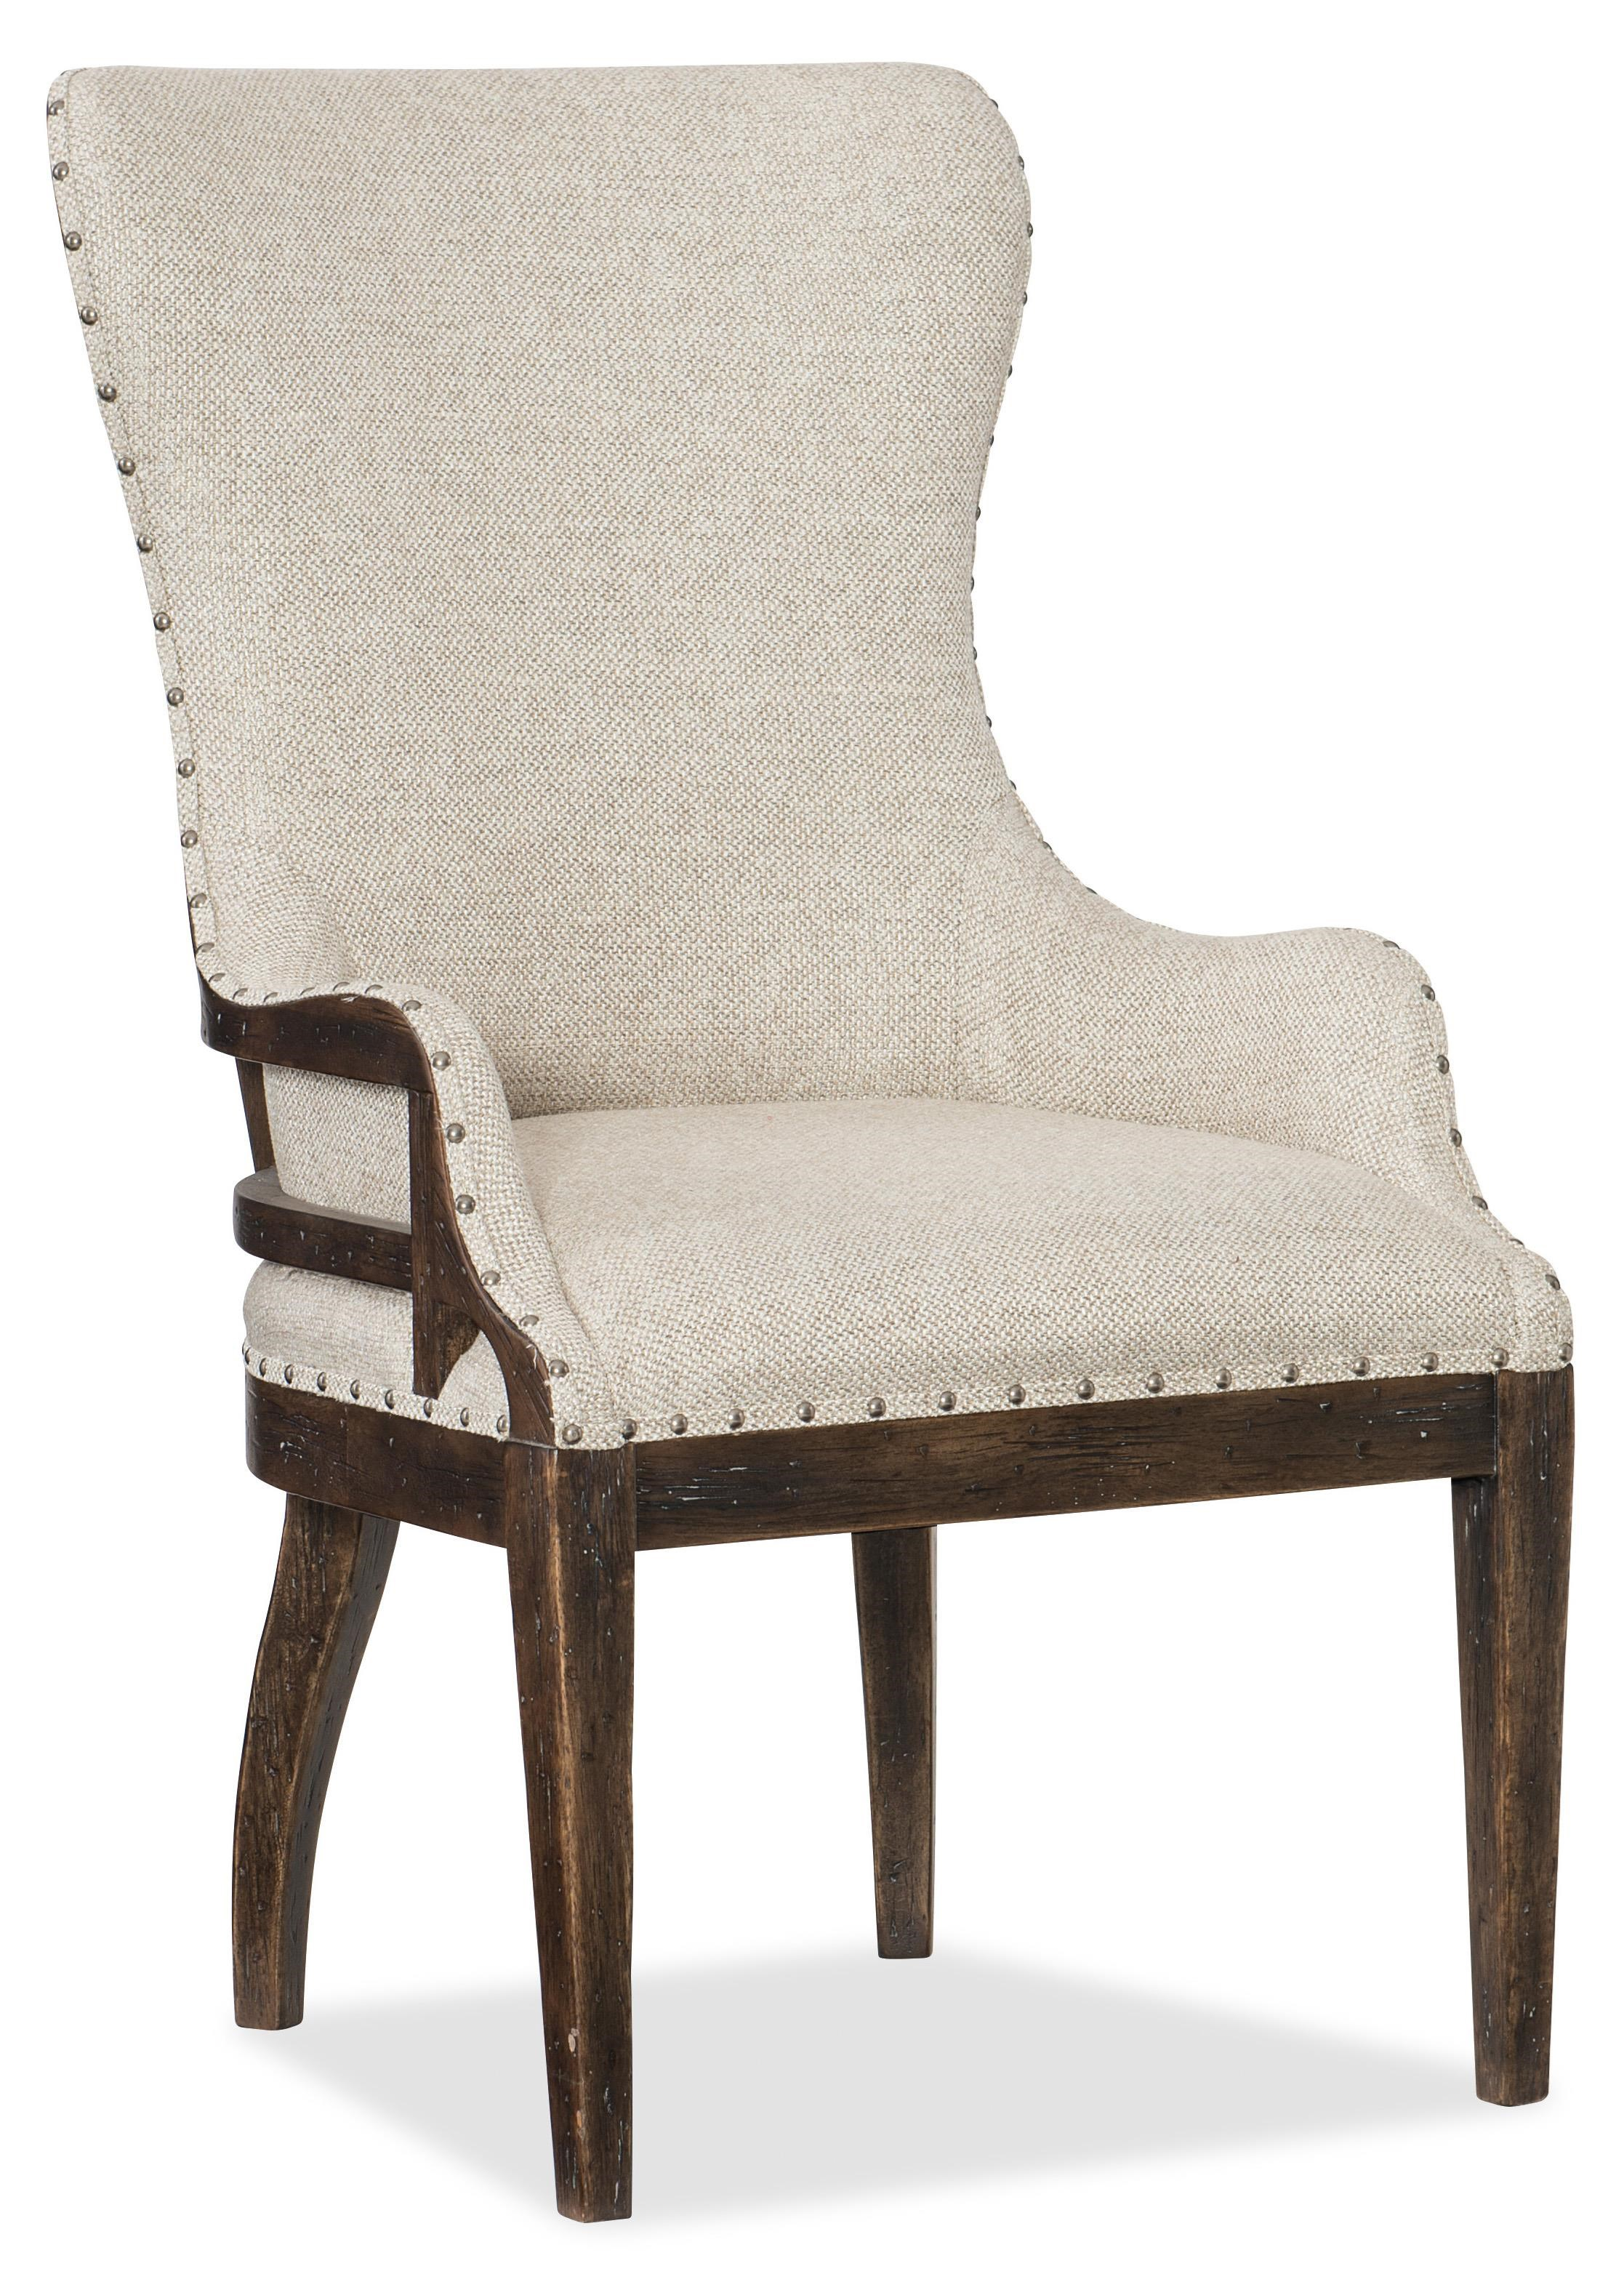 Hooker Furniture 1618-American Life Upholstered Chair - Item Number: 1618-75500-DKW